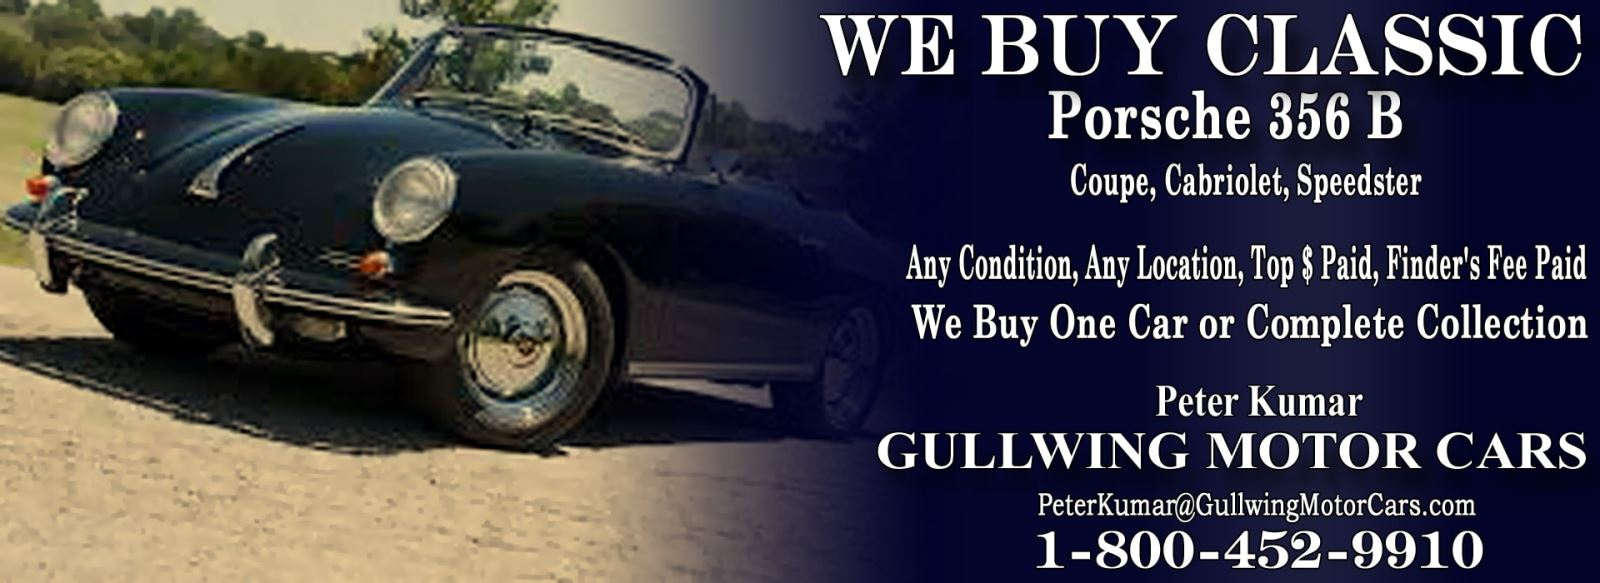 Classic Porsche 356 B  for sale, we buy vintage Porsche 356 B. Call Peter Kumar. Gullwing Motor